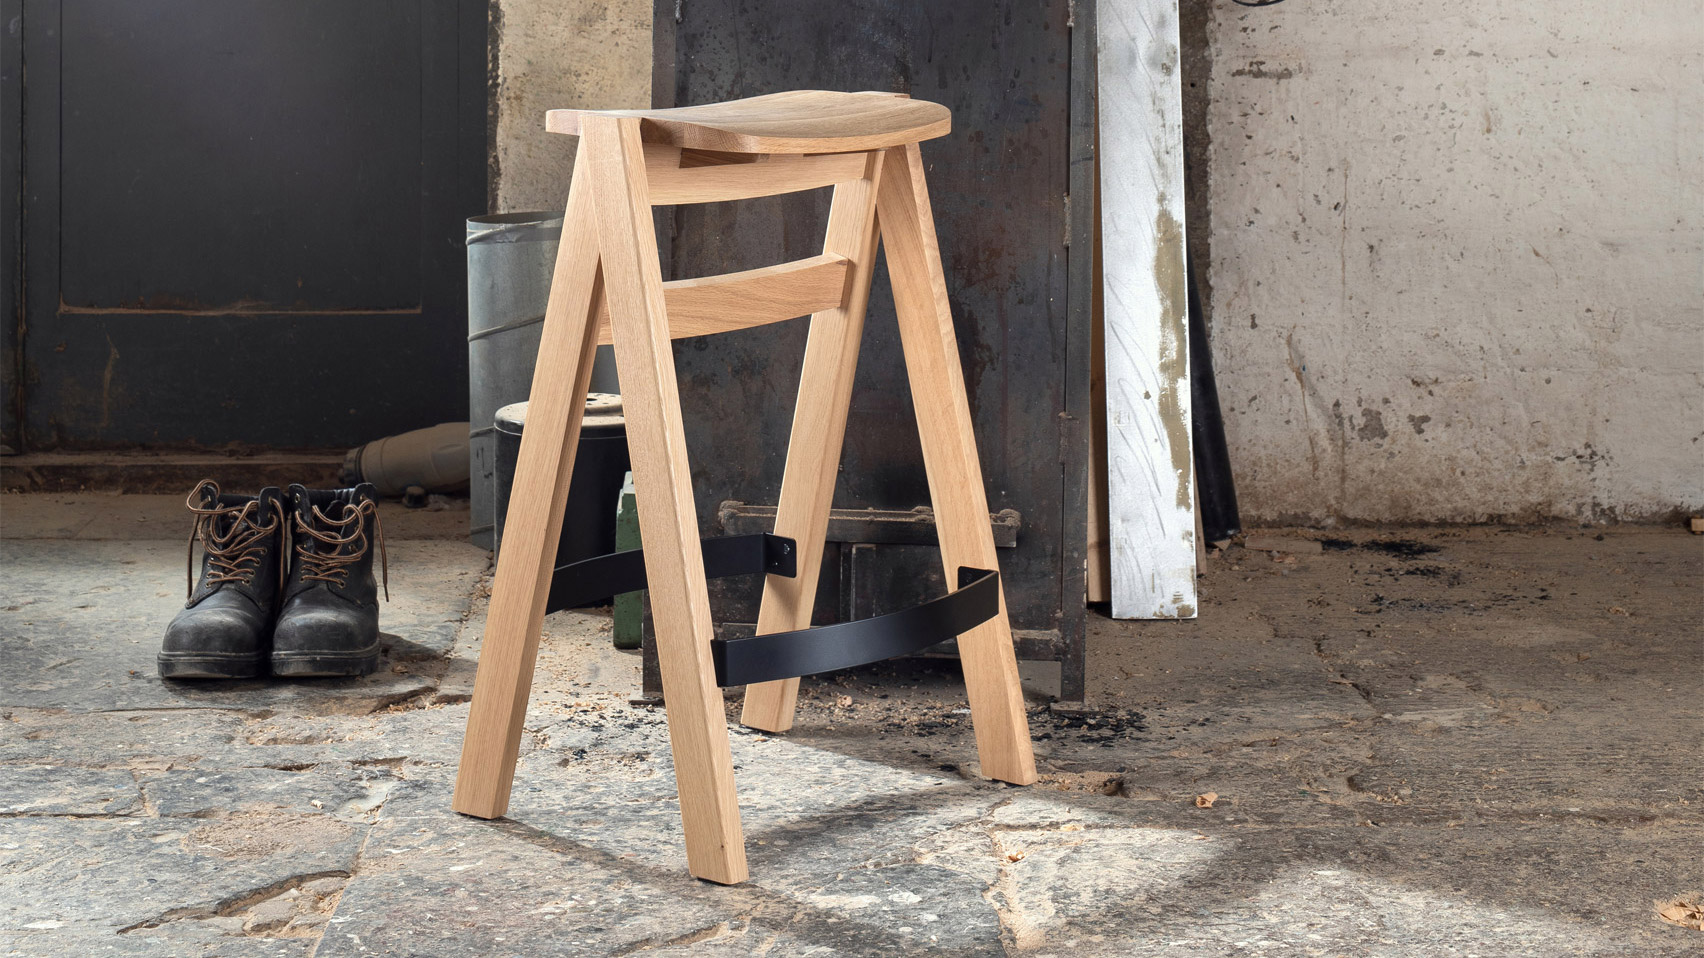 Prime Lap Stool By Smithmattias Highlights Traditional Joinery Caraccident5 Cool Chair Designs And Ideas Caraccident5Info